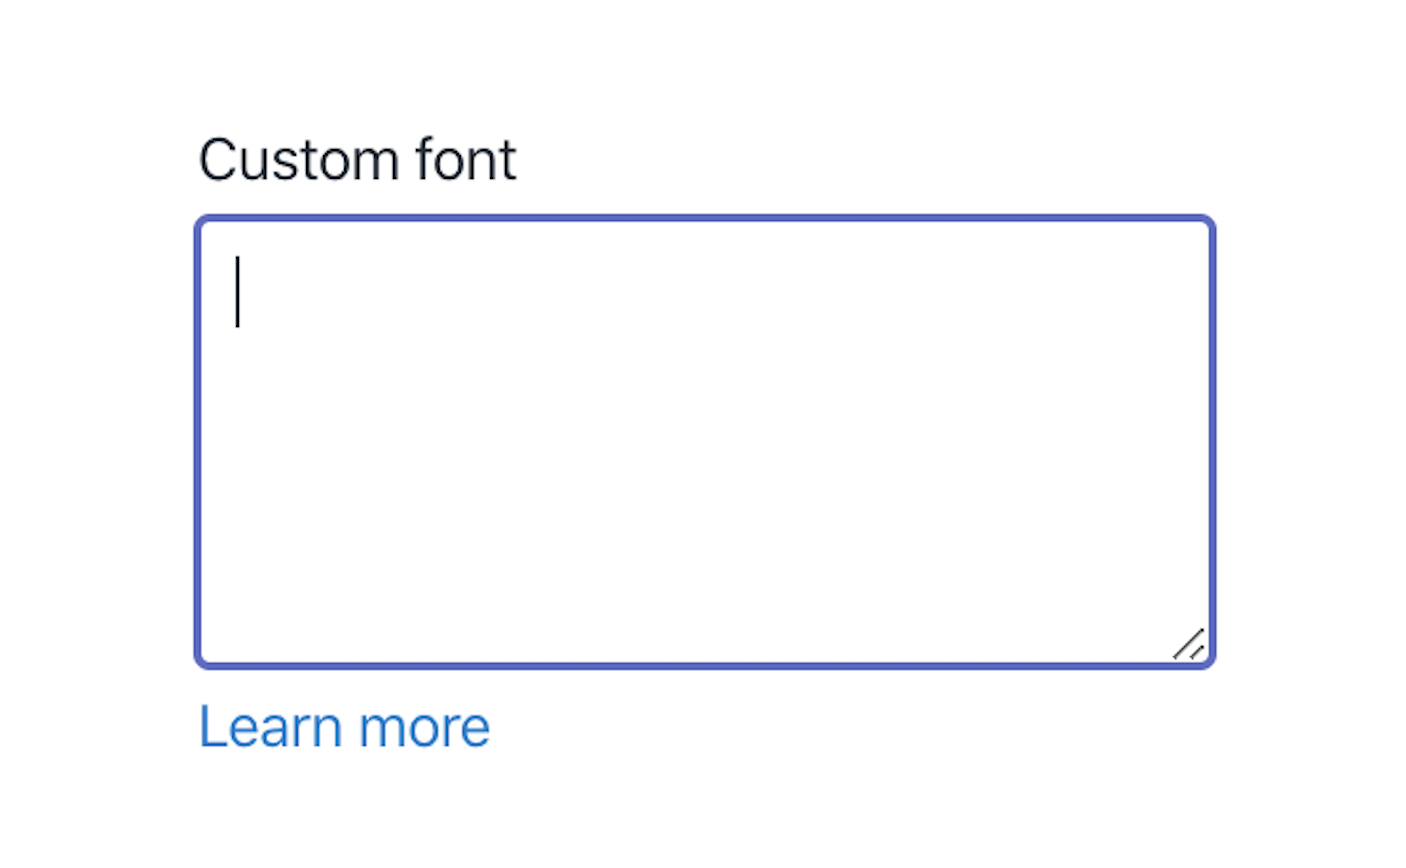 Custom_font_field_only_in_Superstore.png